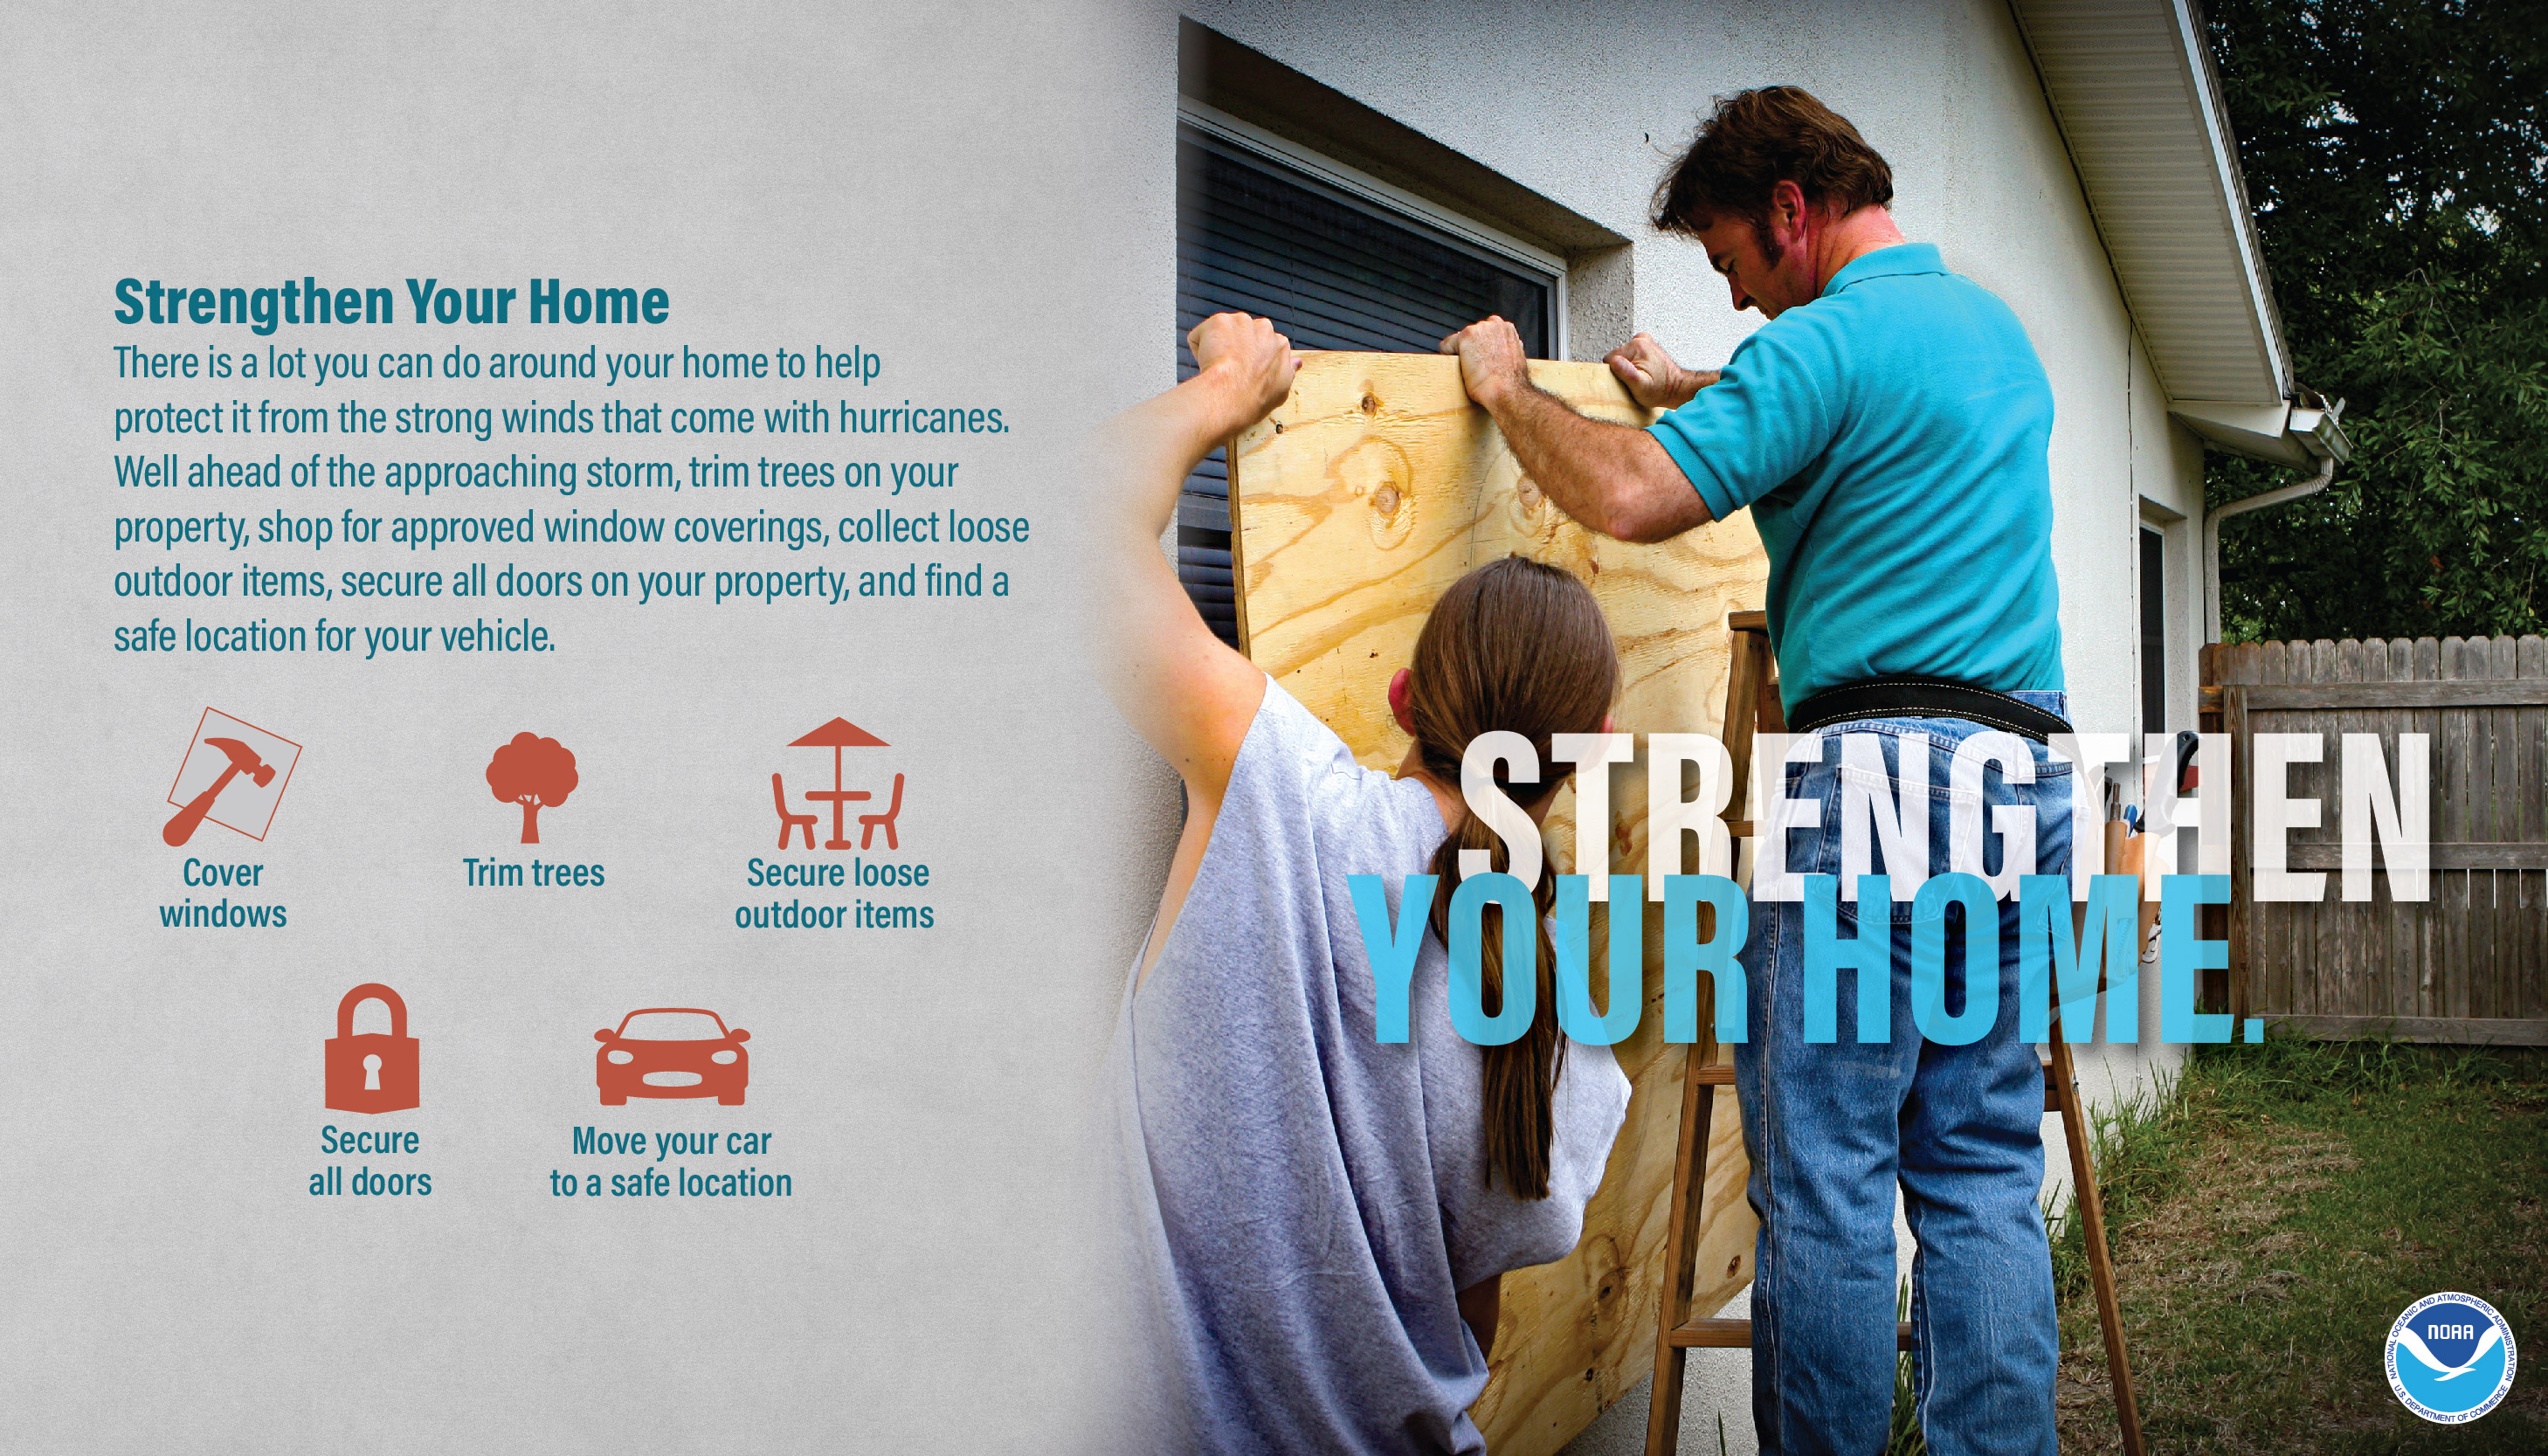 Strengthen Your Home